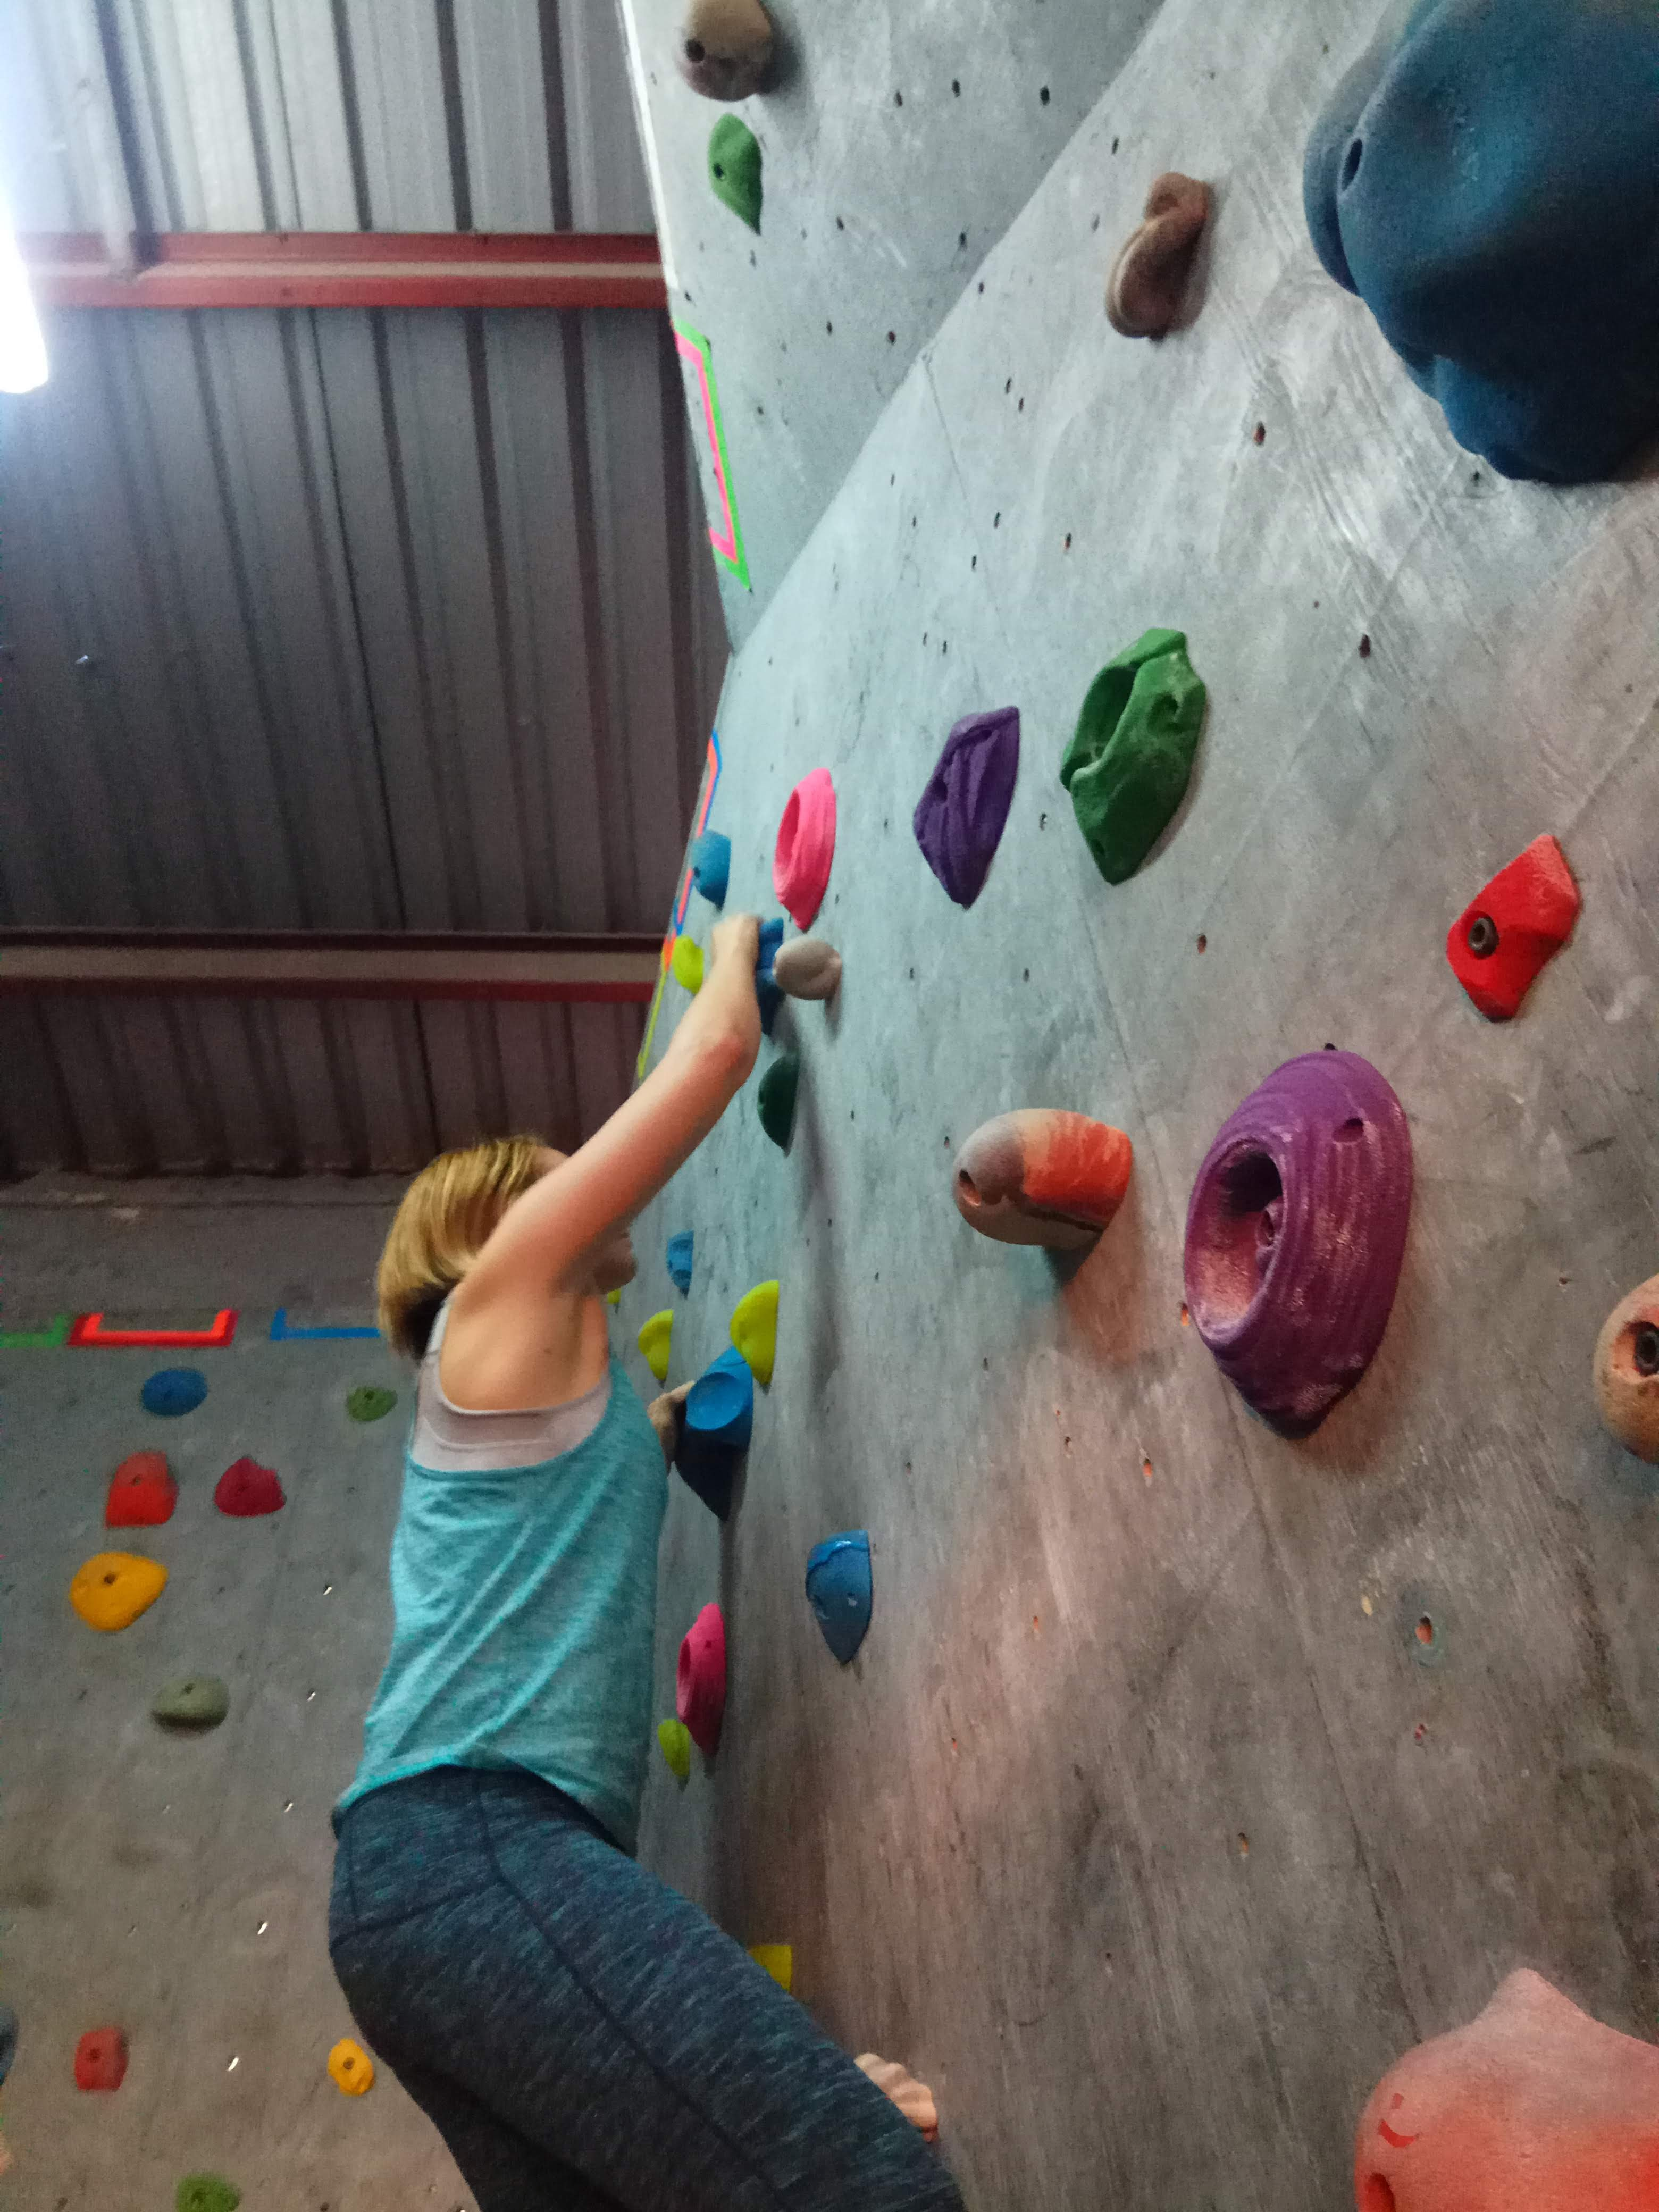 Me on the wall at BlueSky Climbing Gym